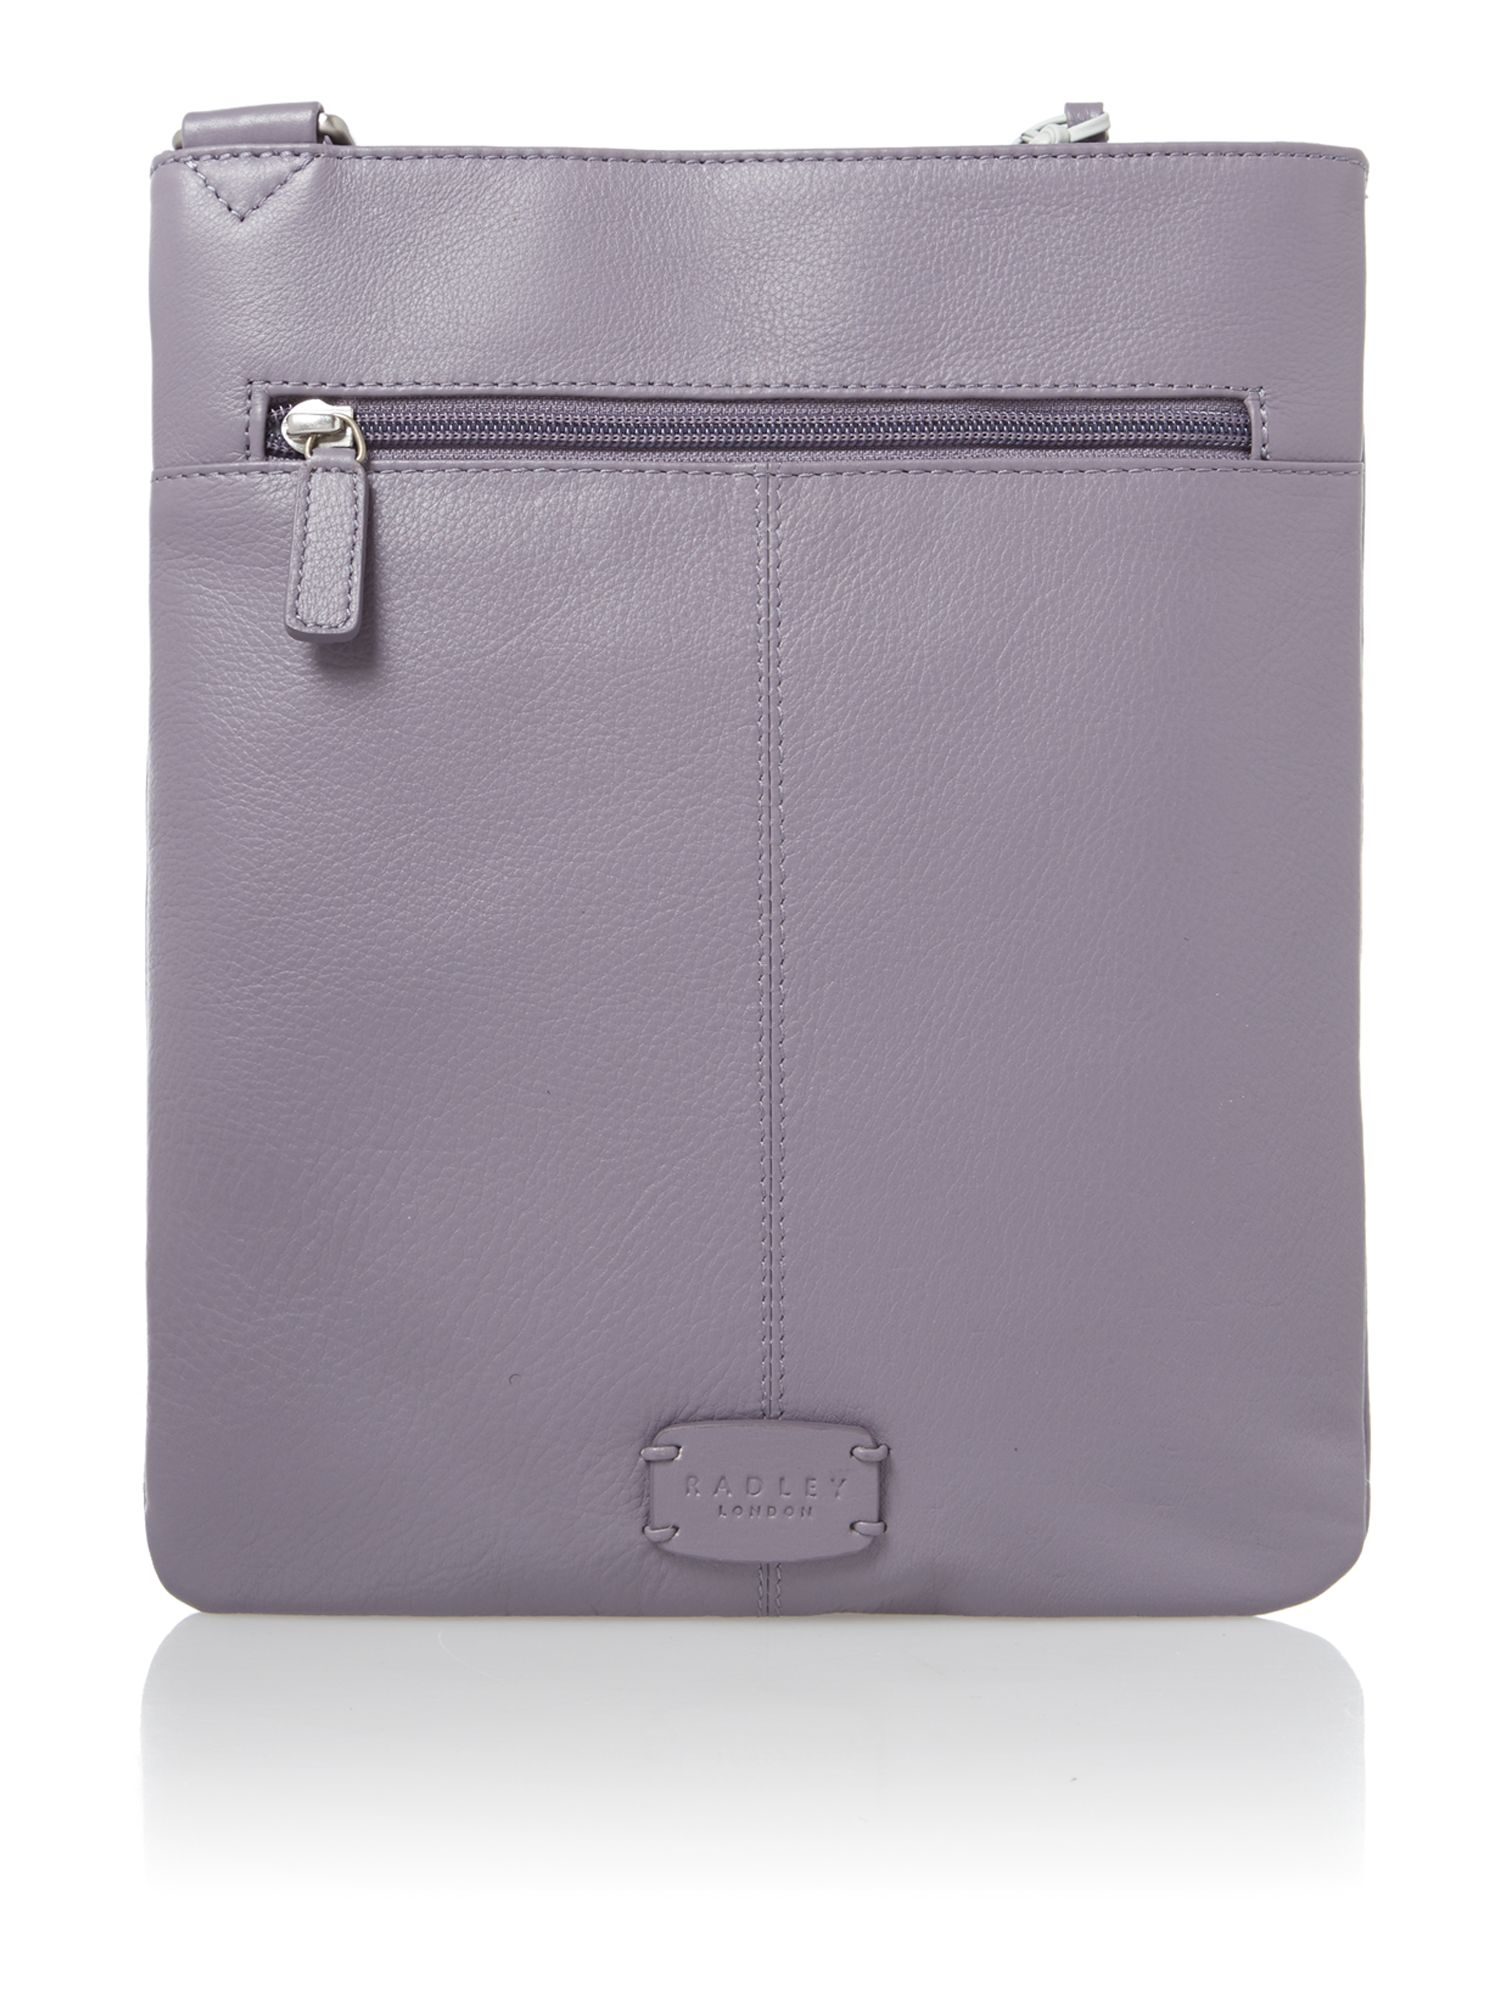 Pocket purple cross body bag